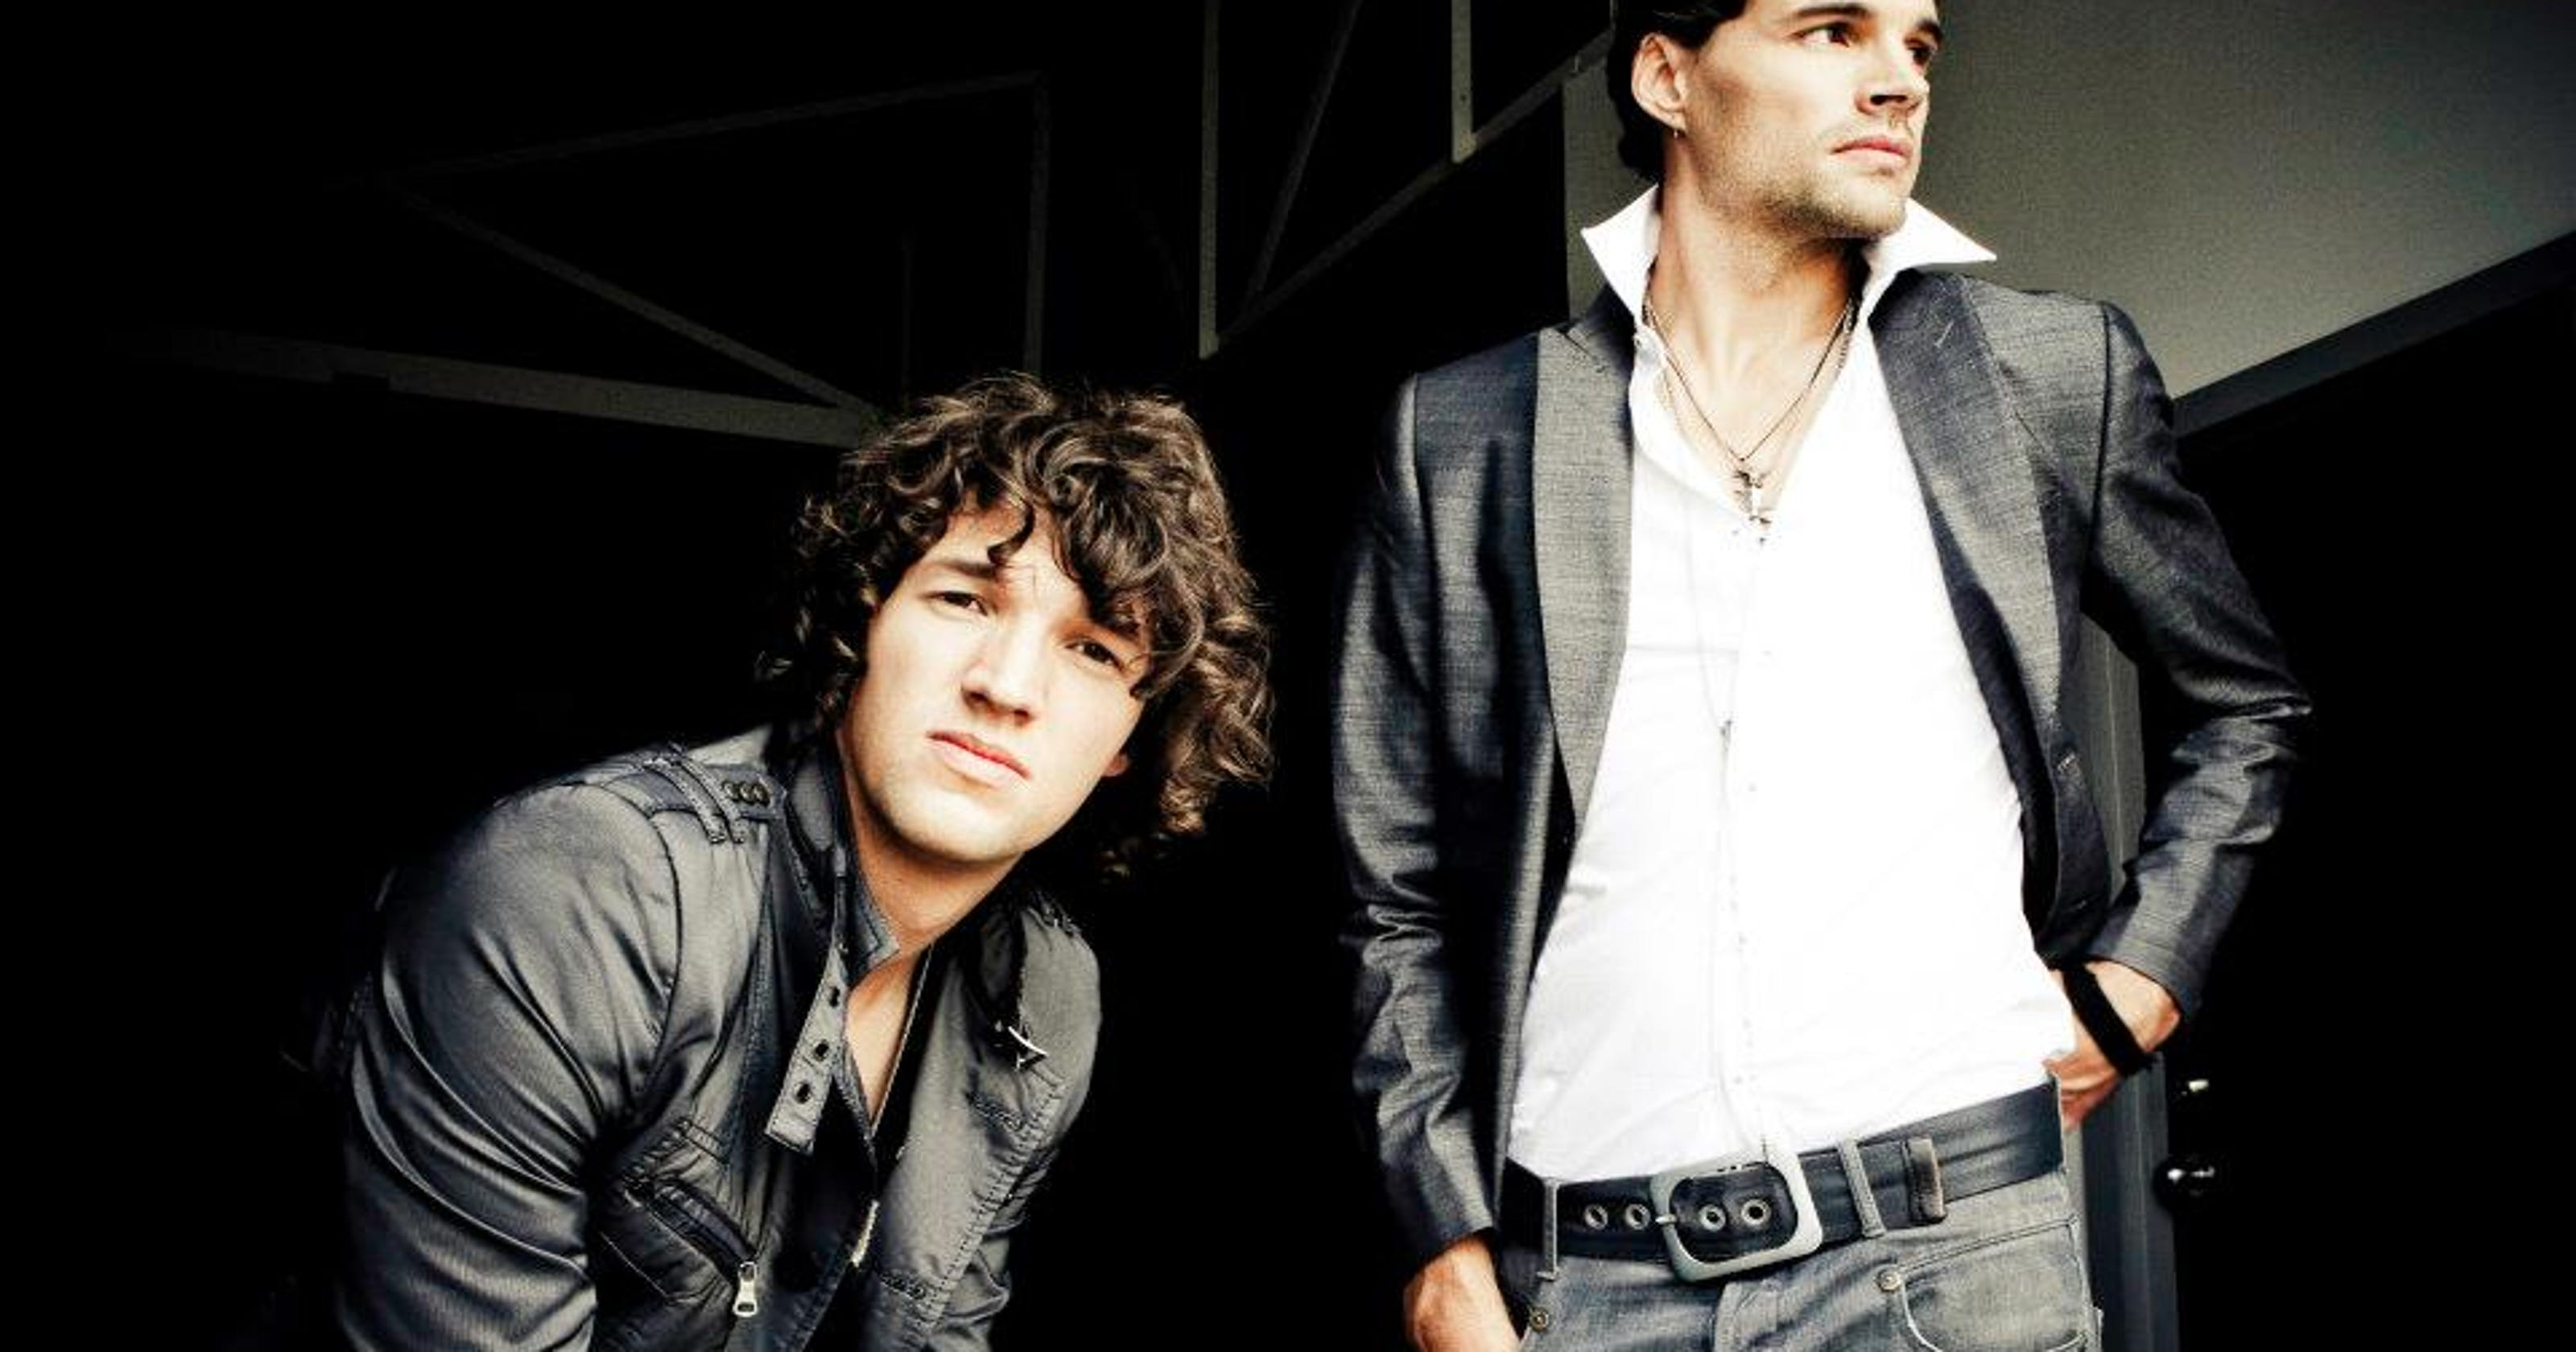 For King & Country sing of hope, face fear on new album